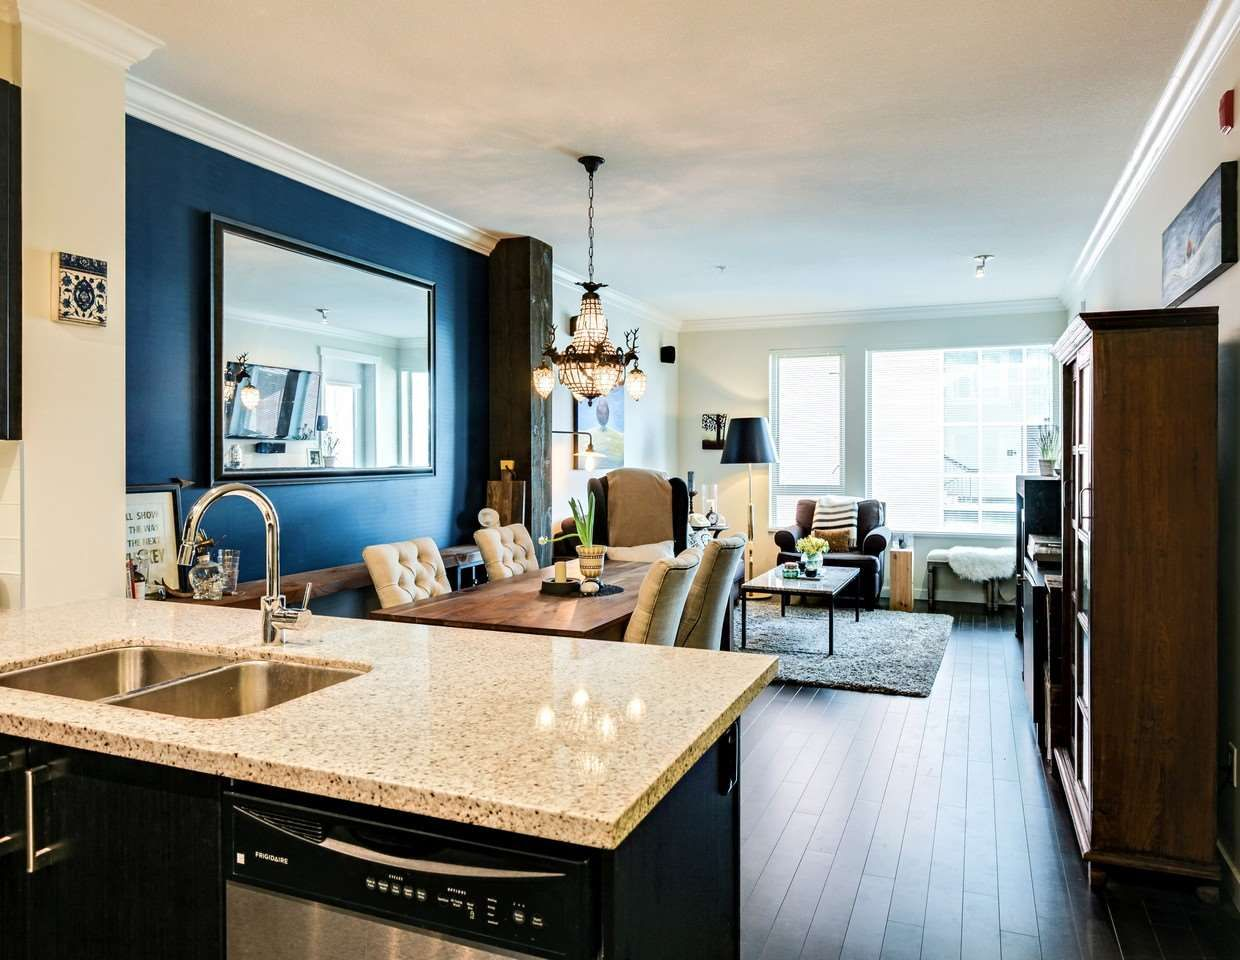 Photo 3: Photos: 319 119 W 22ND STREET in North Vancouver: Central Lonsdale Condo for sale : MLS®# R2047201